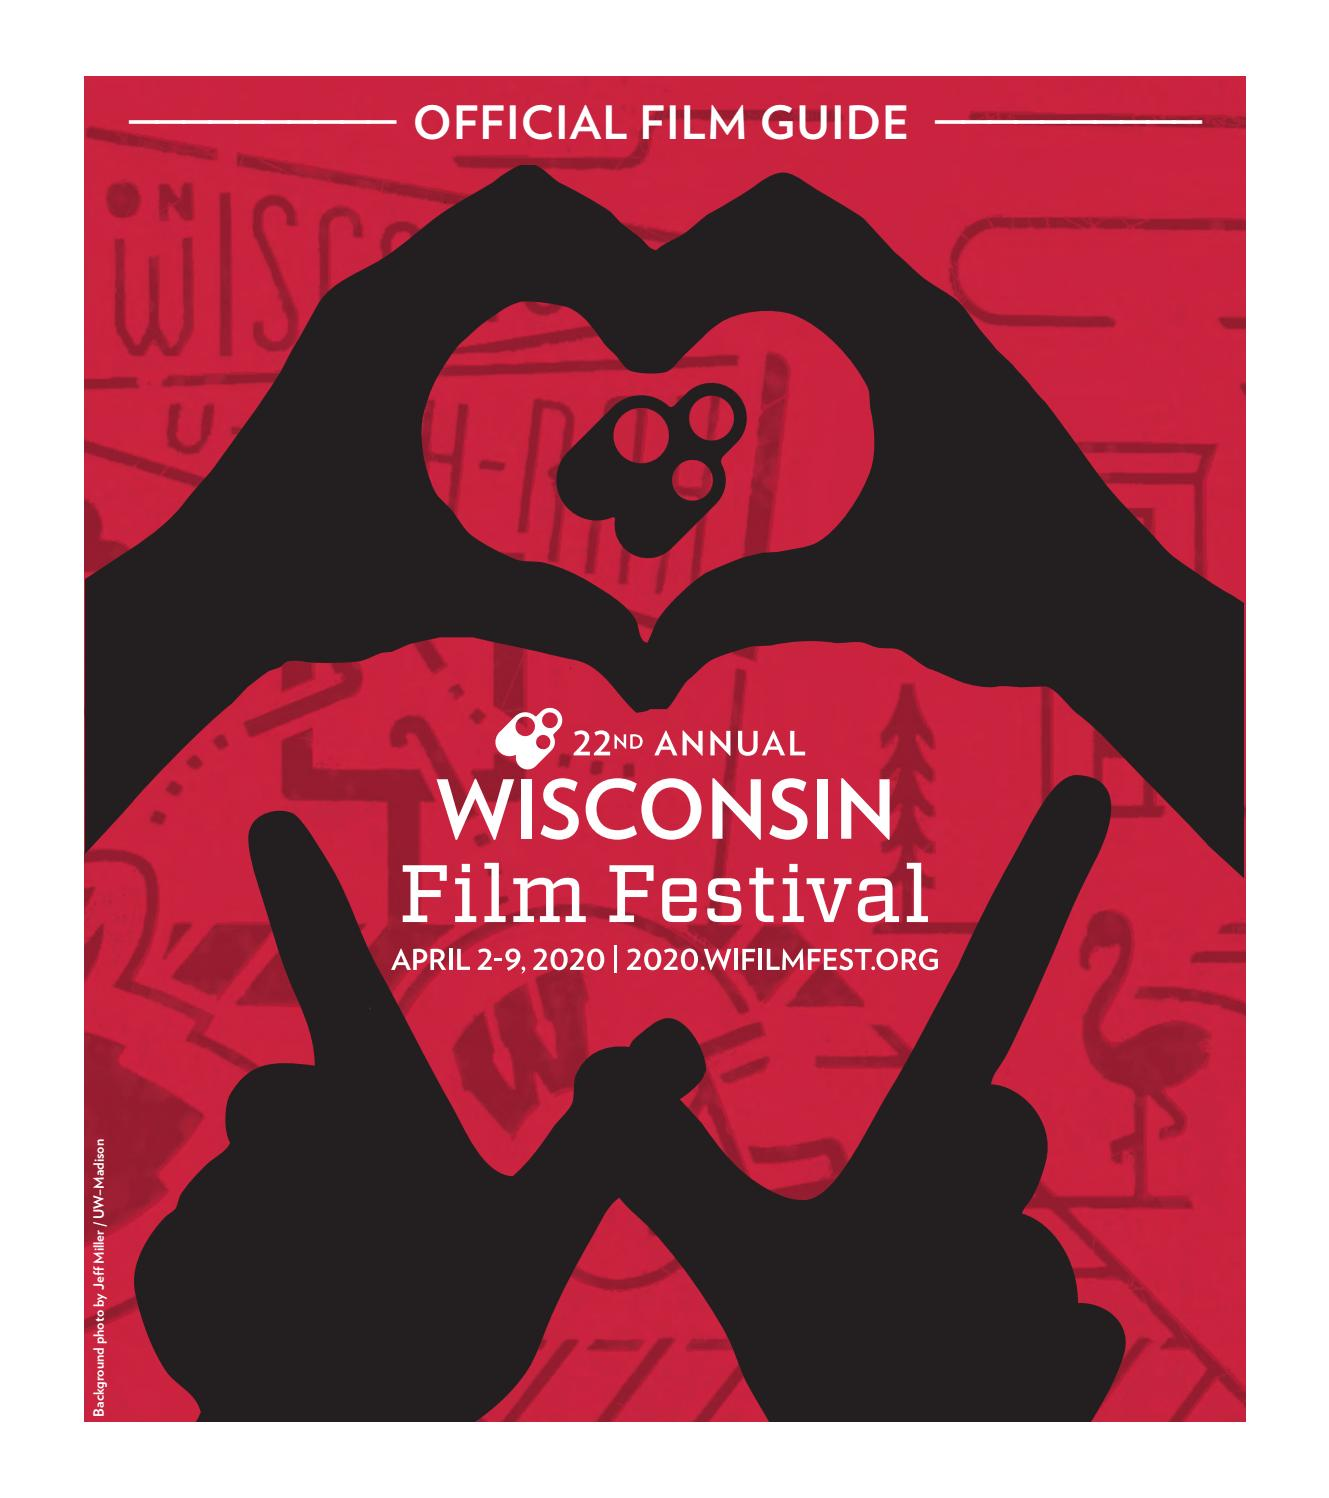 Klaus Wisconsin Christmas Festival 2020 2020 Wisconsin Film Festival Film Guide by UW Madison Division of